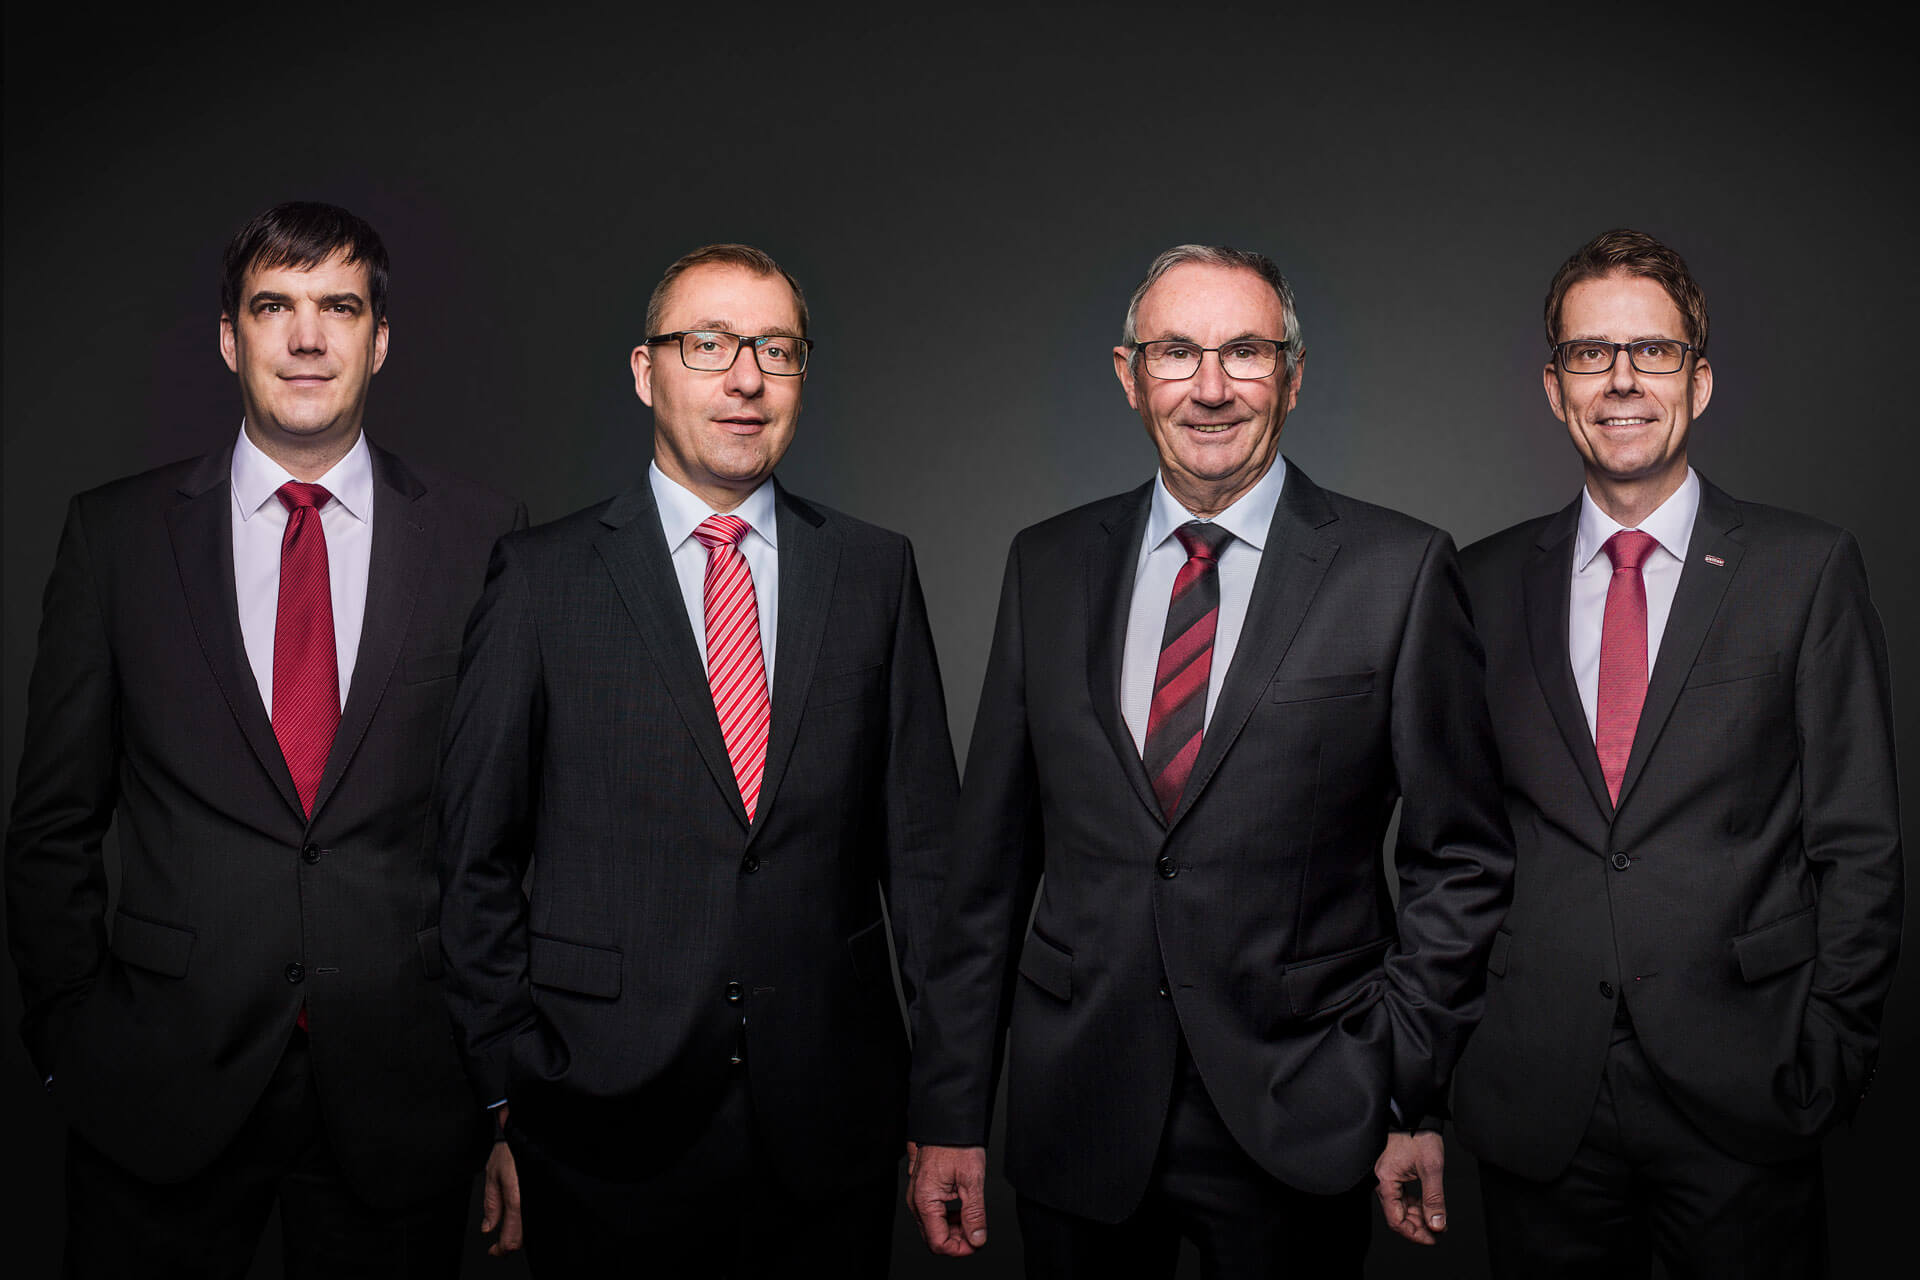 left to right: Michael Gruben (Verkauf); Reiner Heinzelmann (Finance); Joachim Glatthaar (Gründer); Dirk Wetzel (NL Simmern + Technical Department).